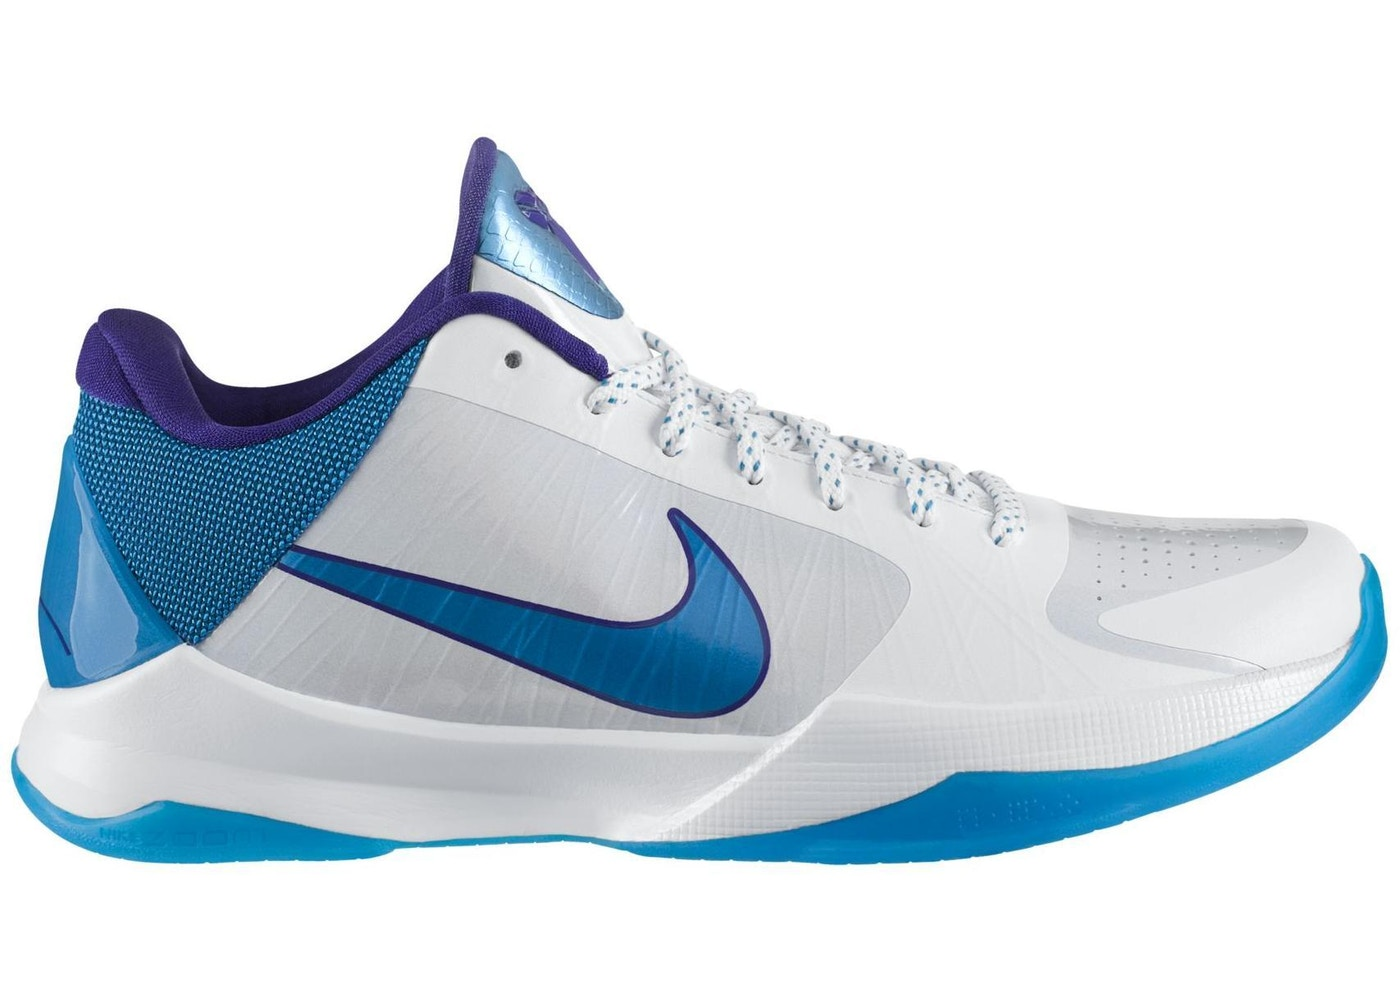 low priced 5ed0d a6c58 Buy Nike Kobe 5 Shoes & Deadstock Sneakers